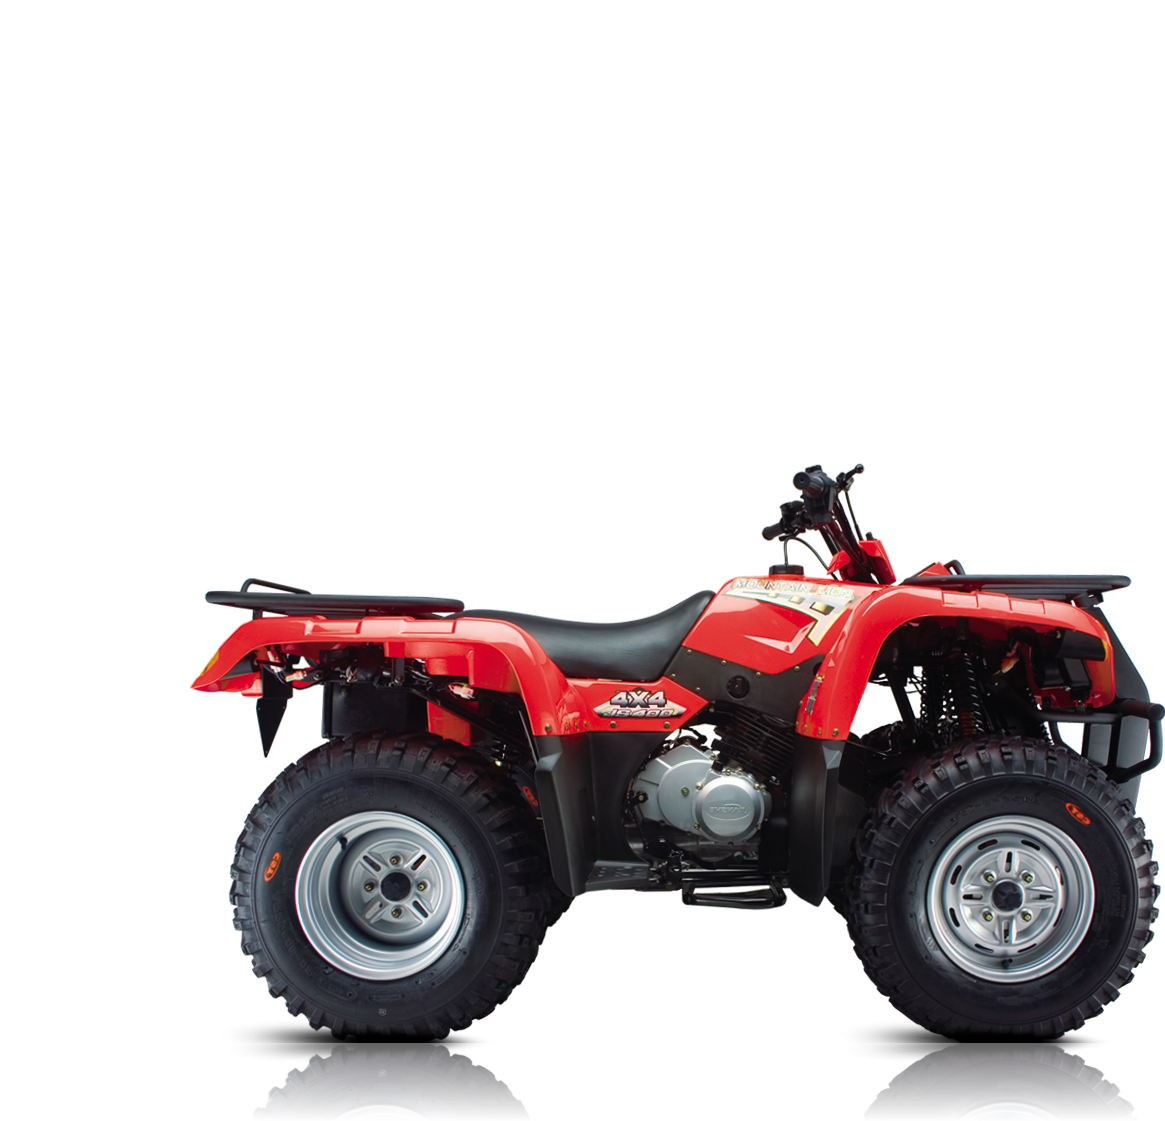 Jianshe js400atv photo - 1